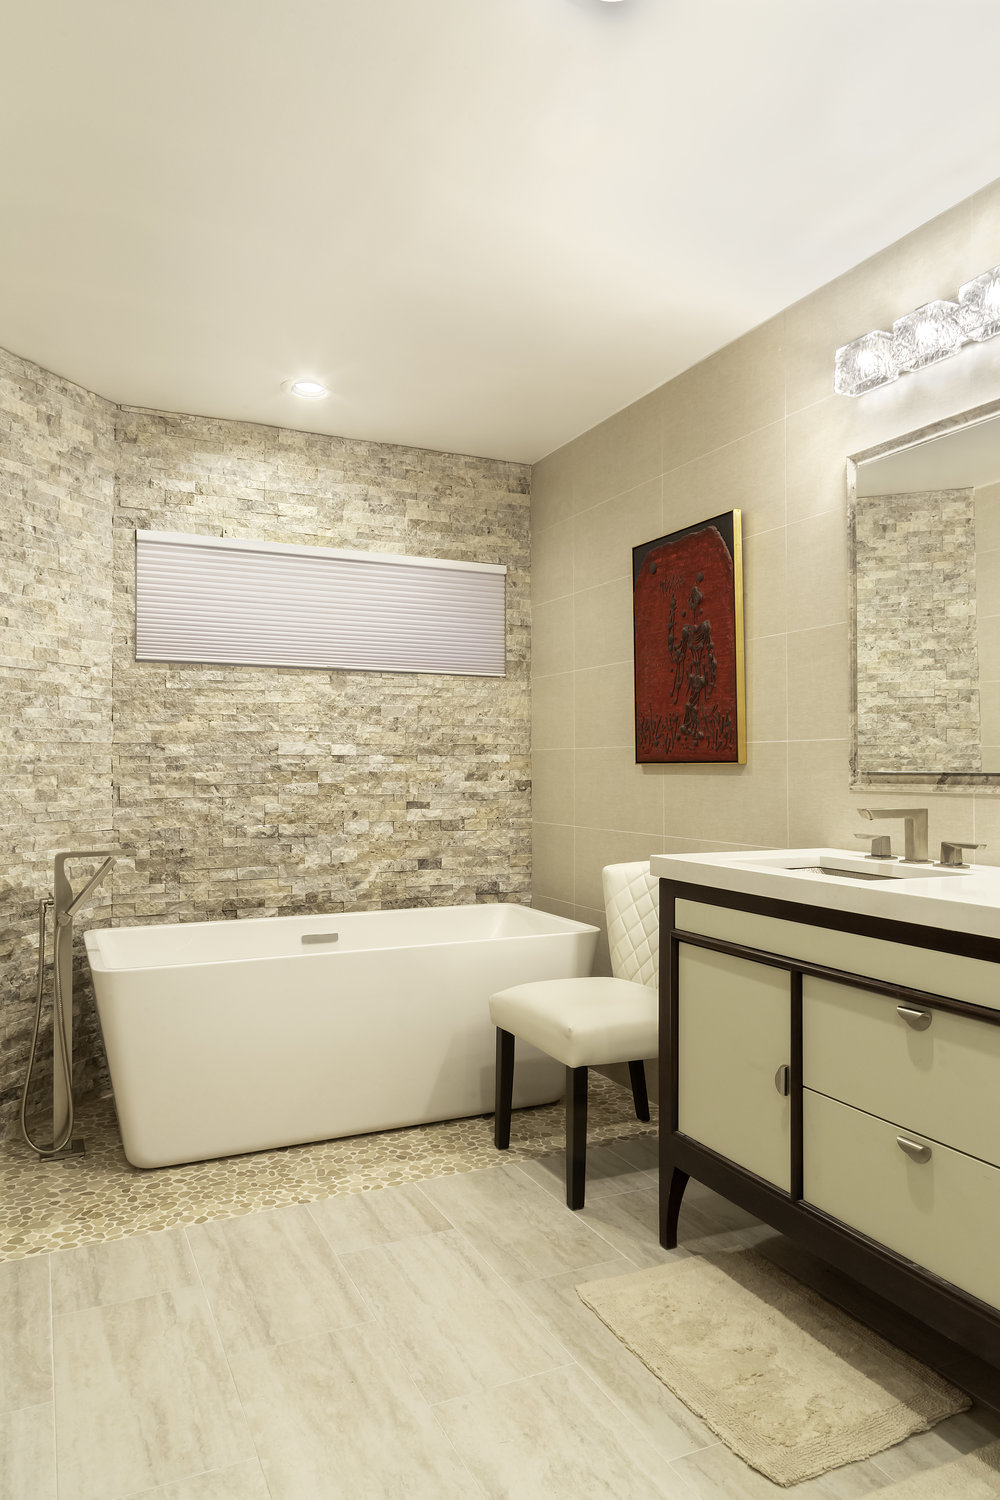 Cream colored bathroom with red painting hanging on wall and plunge bath